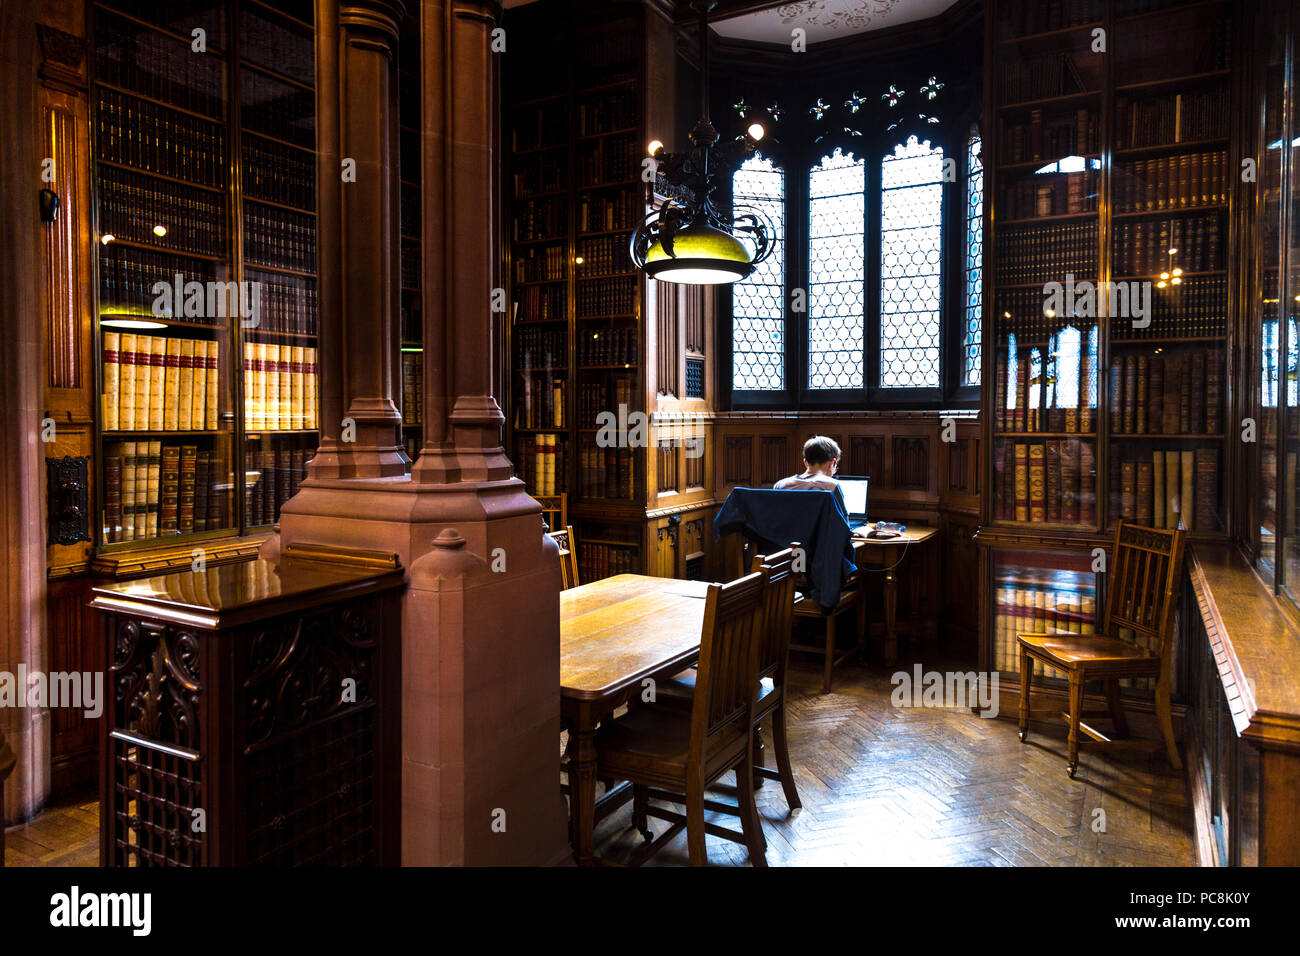 Man sitting with a laptop at an old library doing research, studying, Johny Rylands Library, Manchester, UK - Stock Image